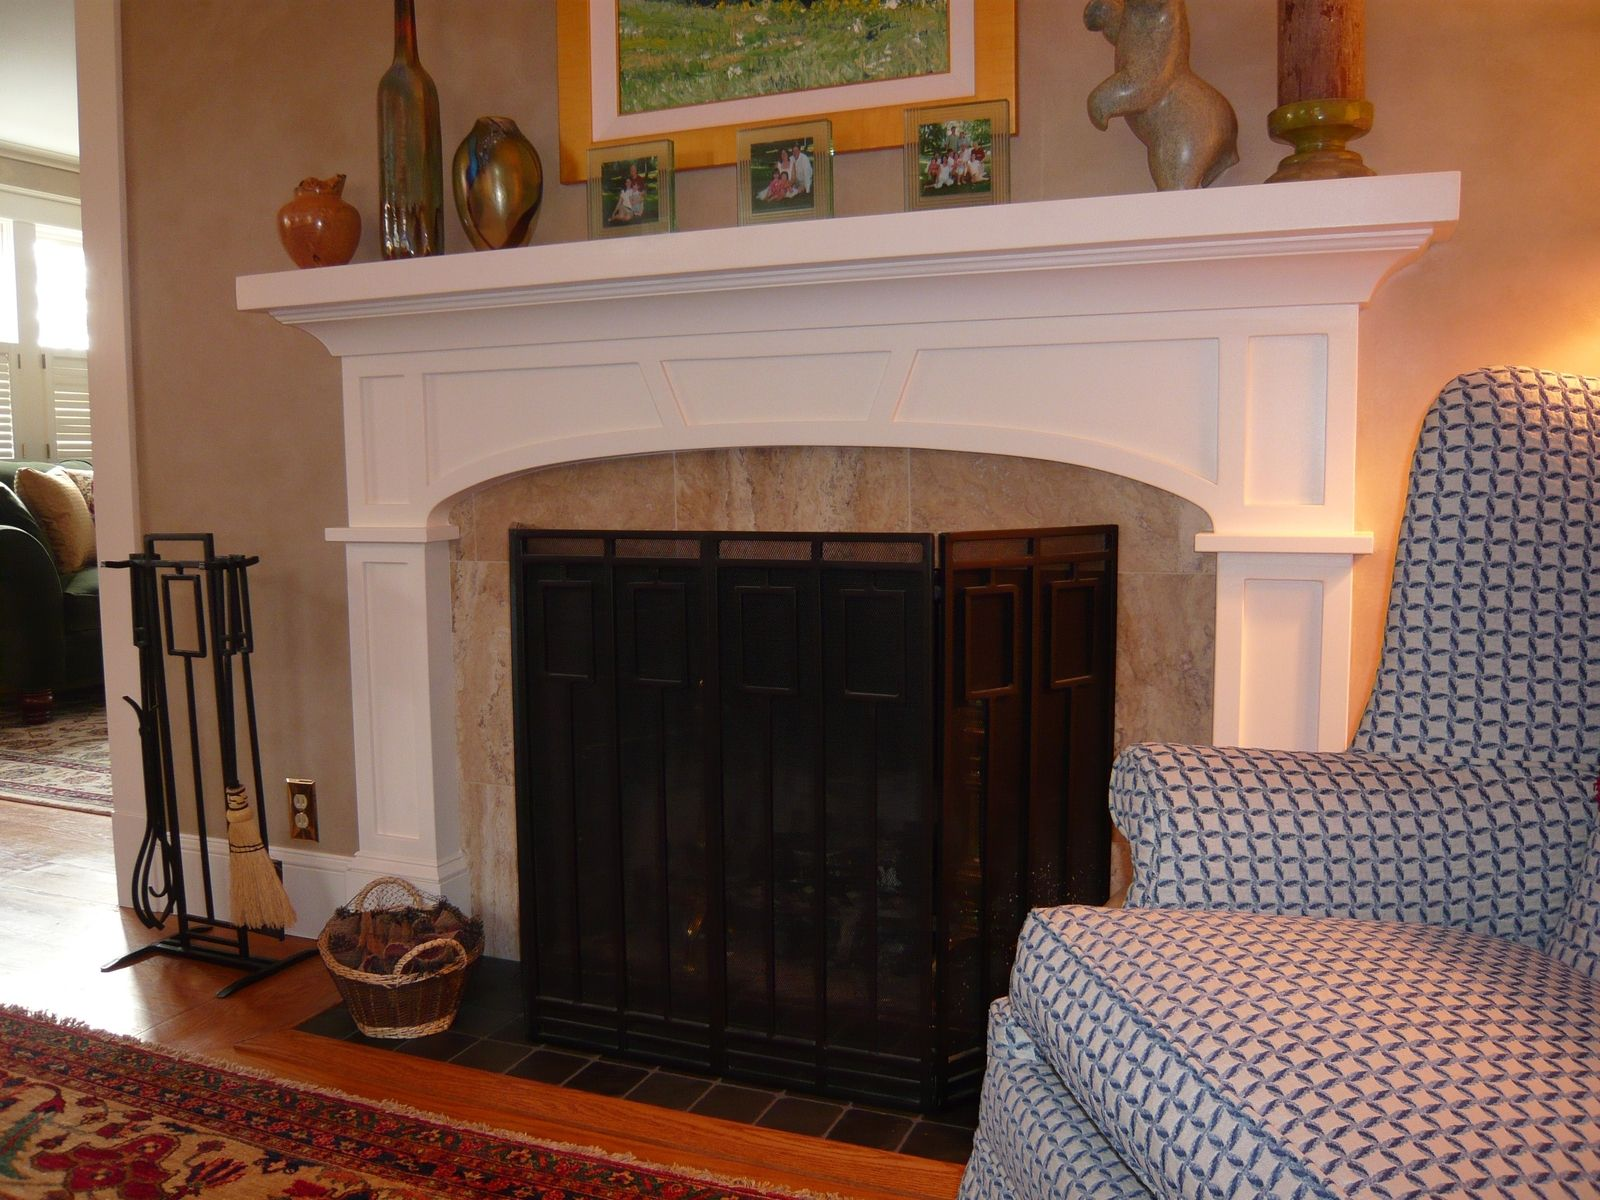 http://homesfeed.com/wp-content/uploads/2015/10/White-Kits-Of-Fireplace-In-Living-Room-Near-A-Recliner-And-Decorative-Carpet.jpg